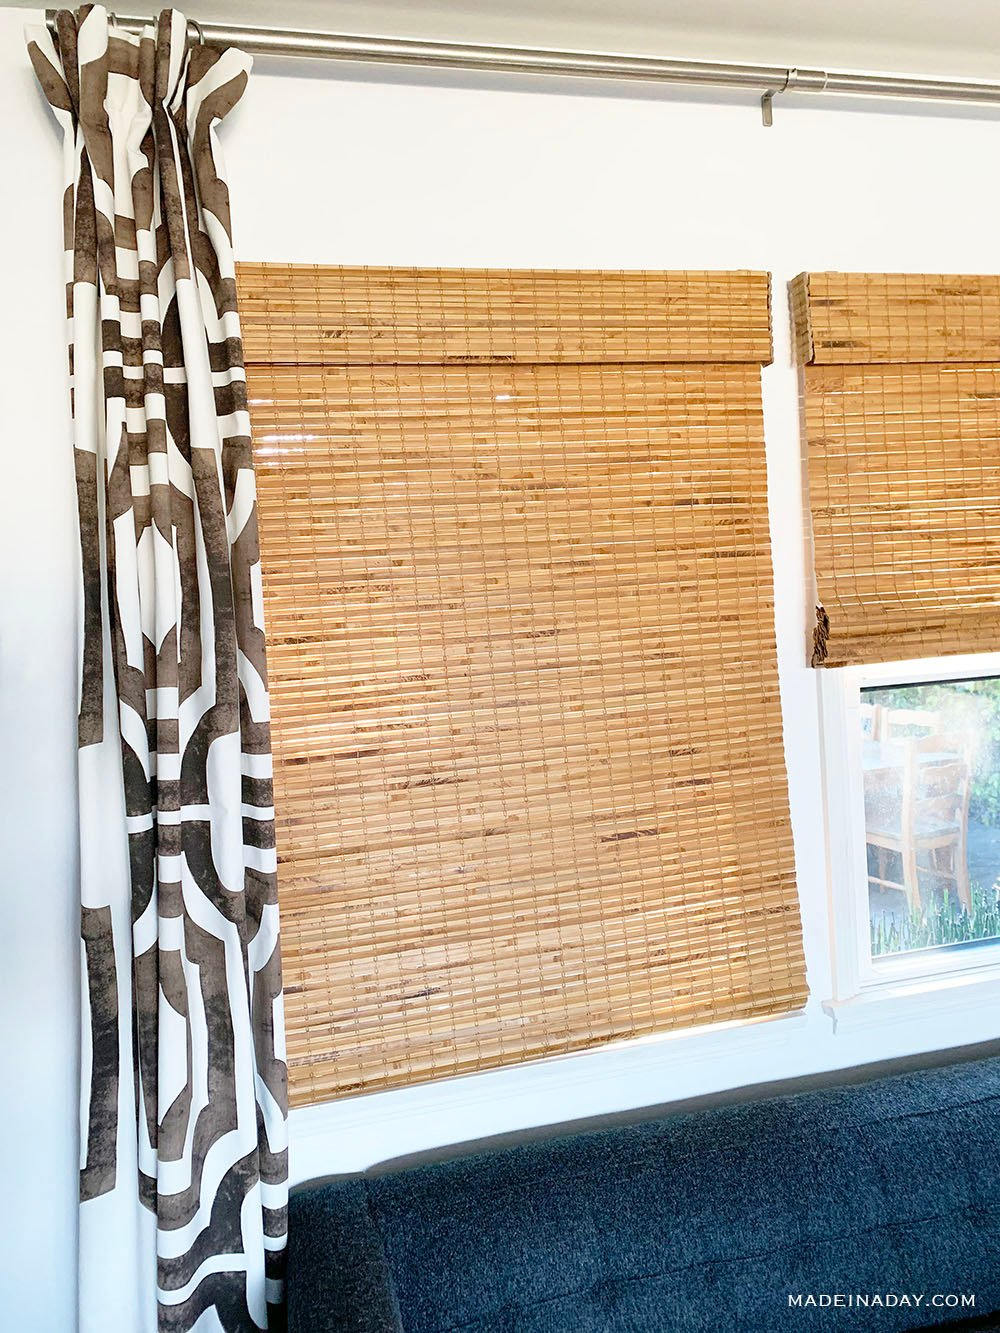 Hatteras Bamboo Blinds, Cordless bamboo blinds,